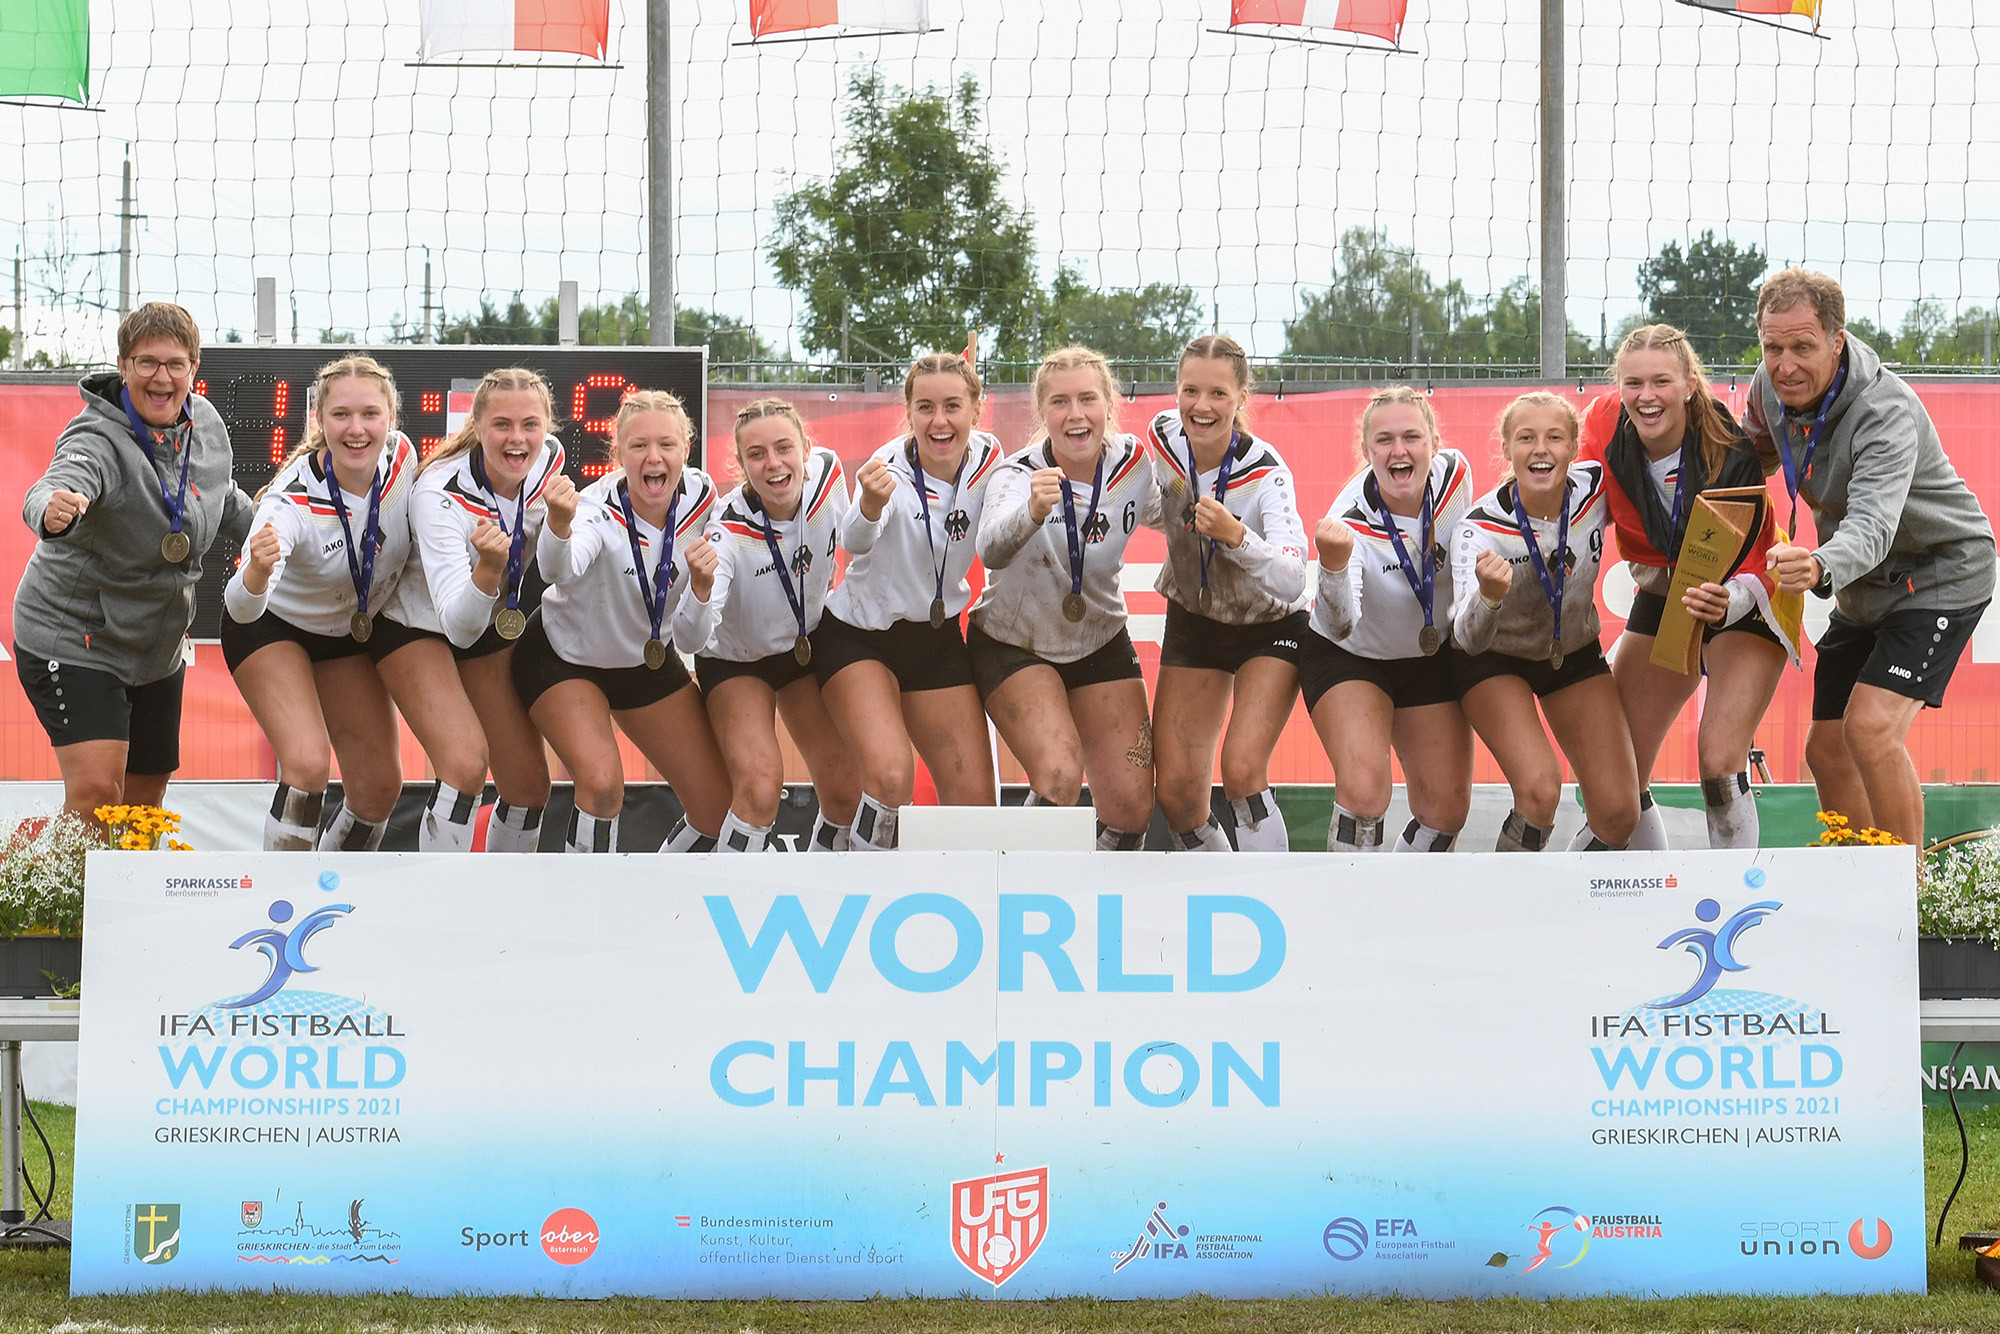 Germany beat Austria to win both under-18 fistball world titles